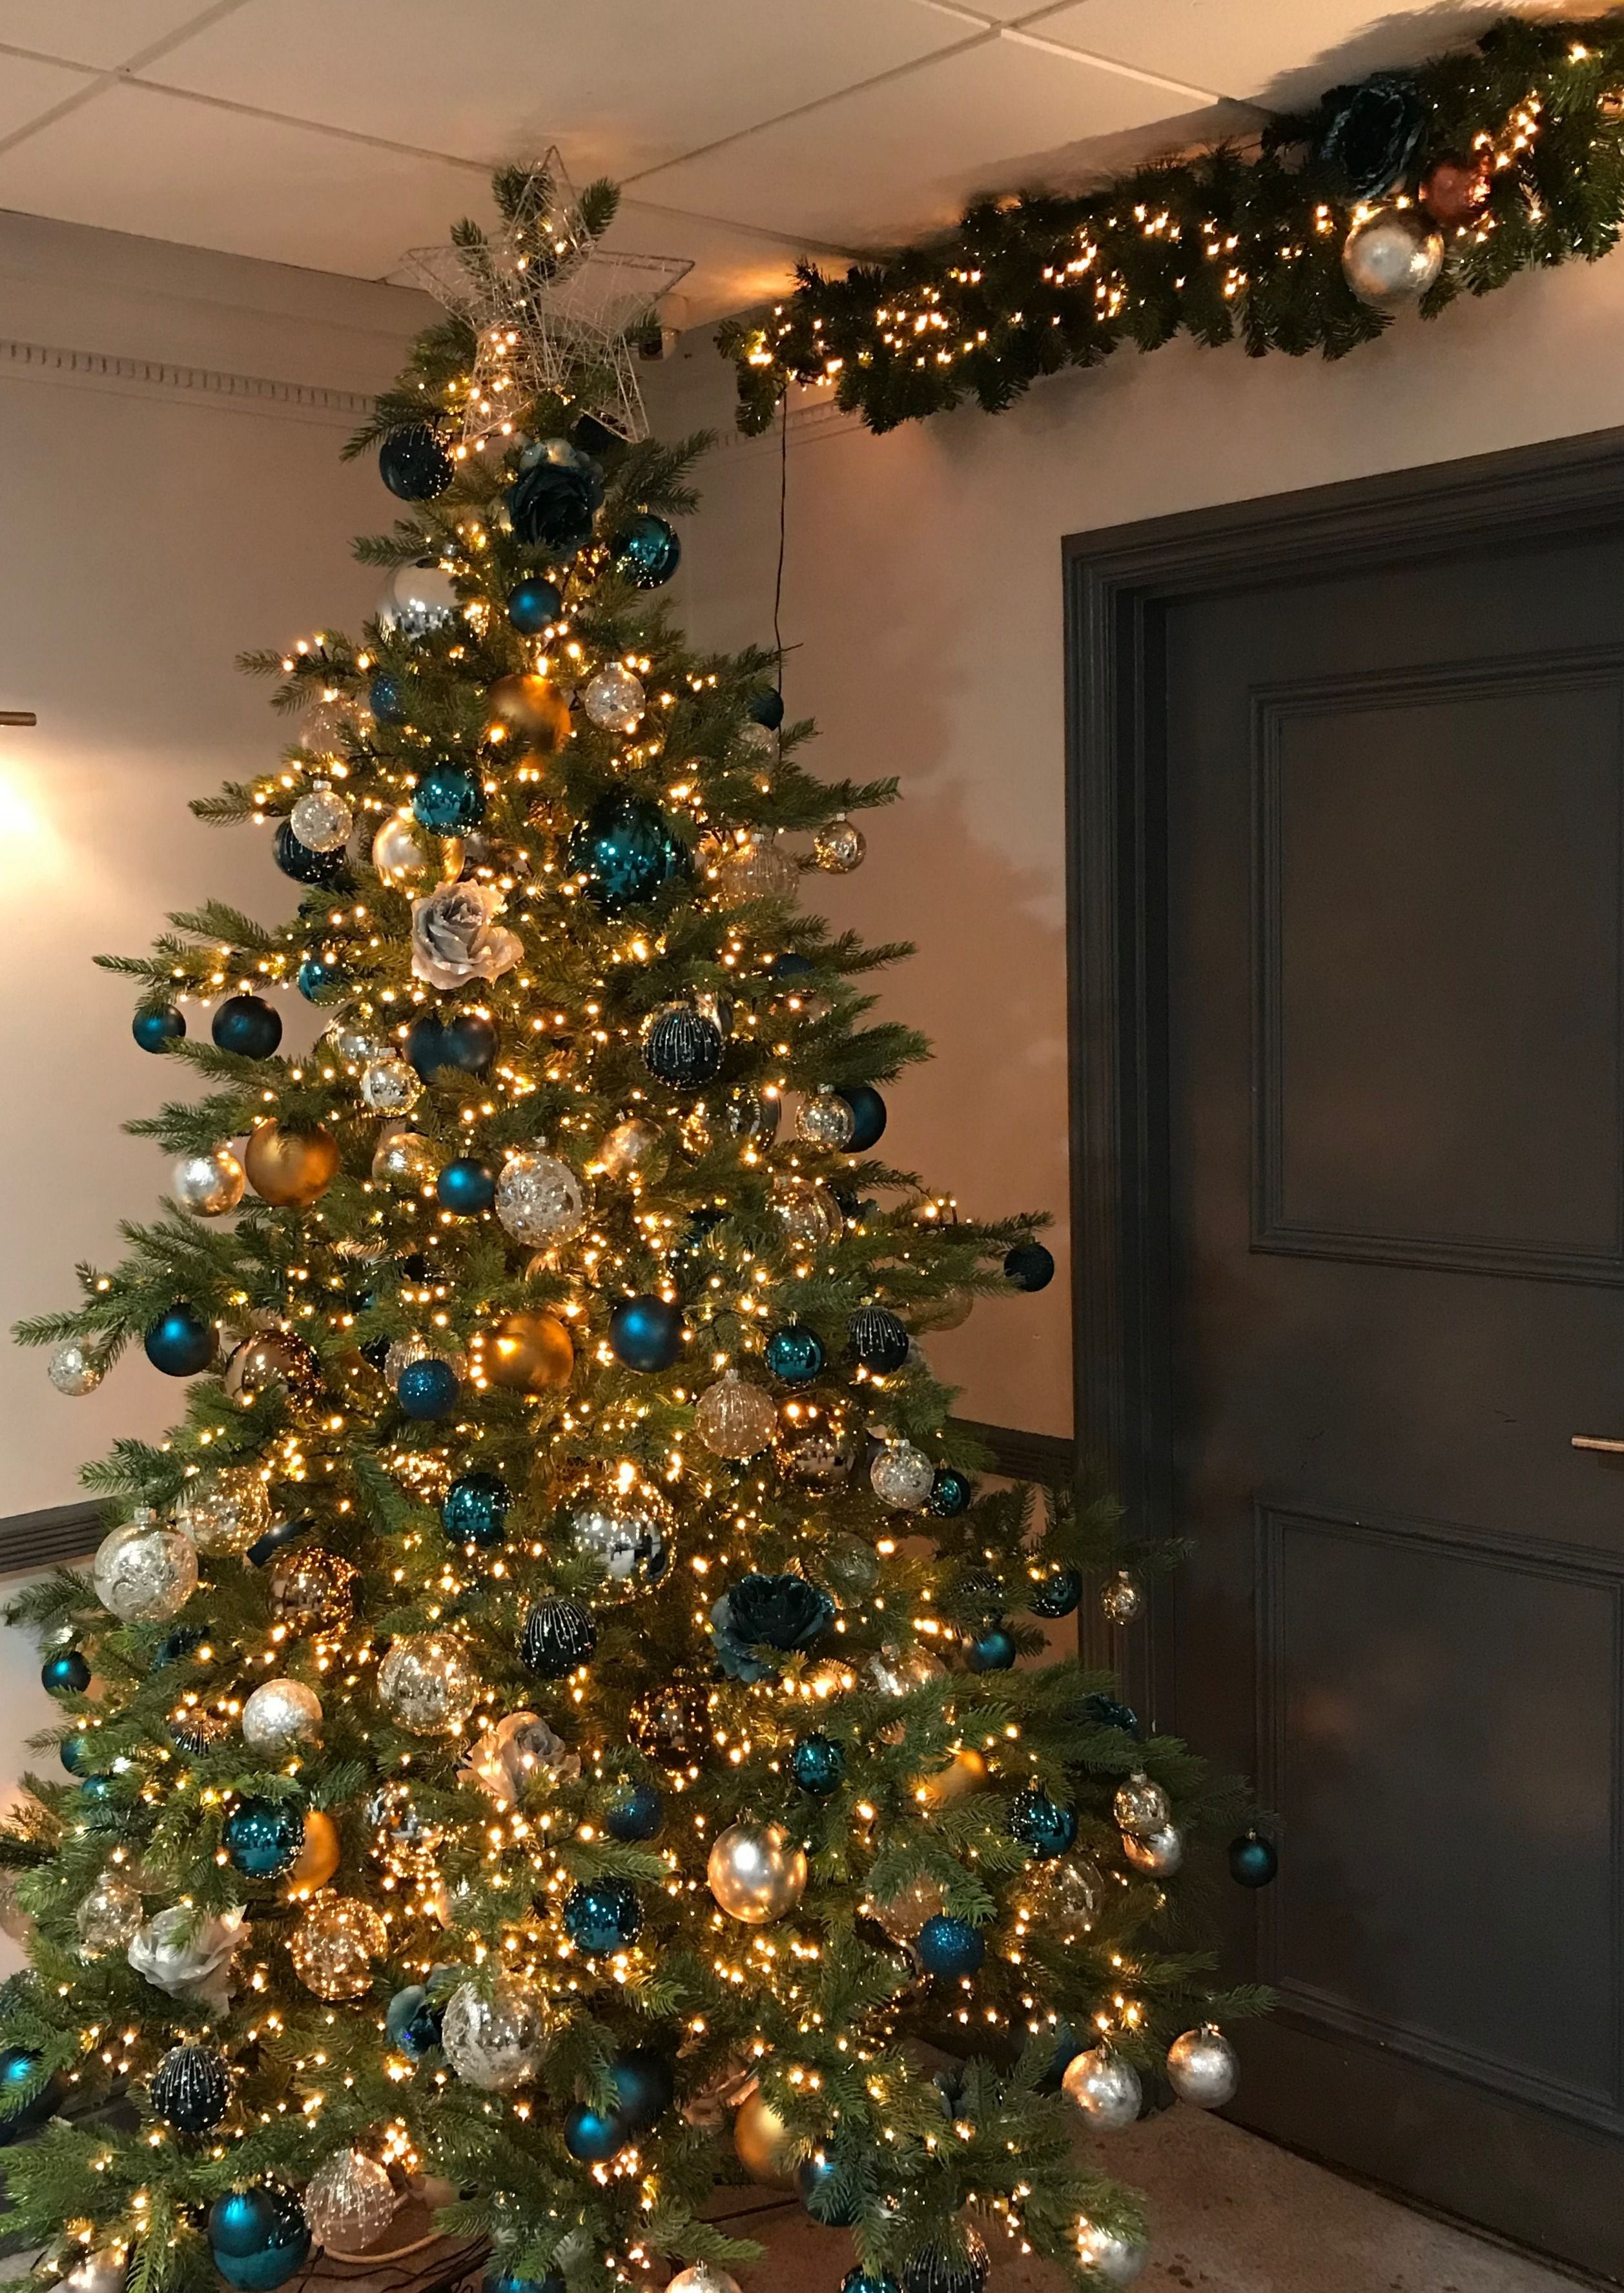 This Artificial Christmas Tree Uses A Copper And Petrol Blue Colour Schem Christmas Tree Colour Scheme Ribbon On Christmas Tree Pink Christmas Tree Decorations